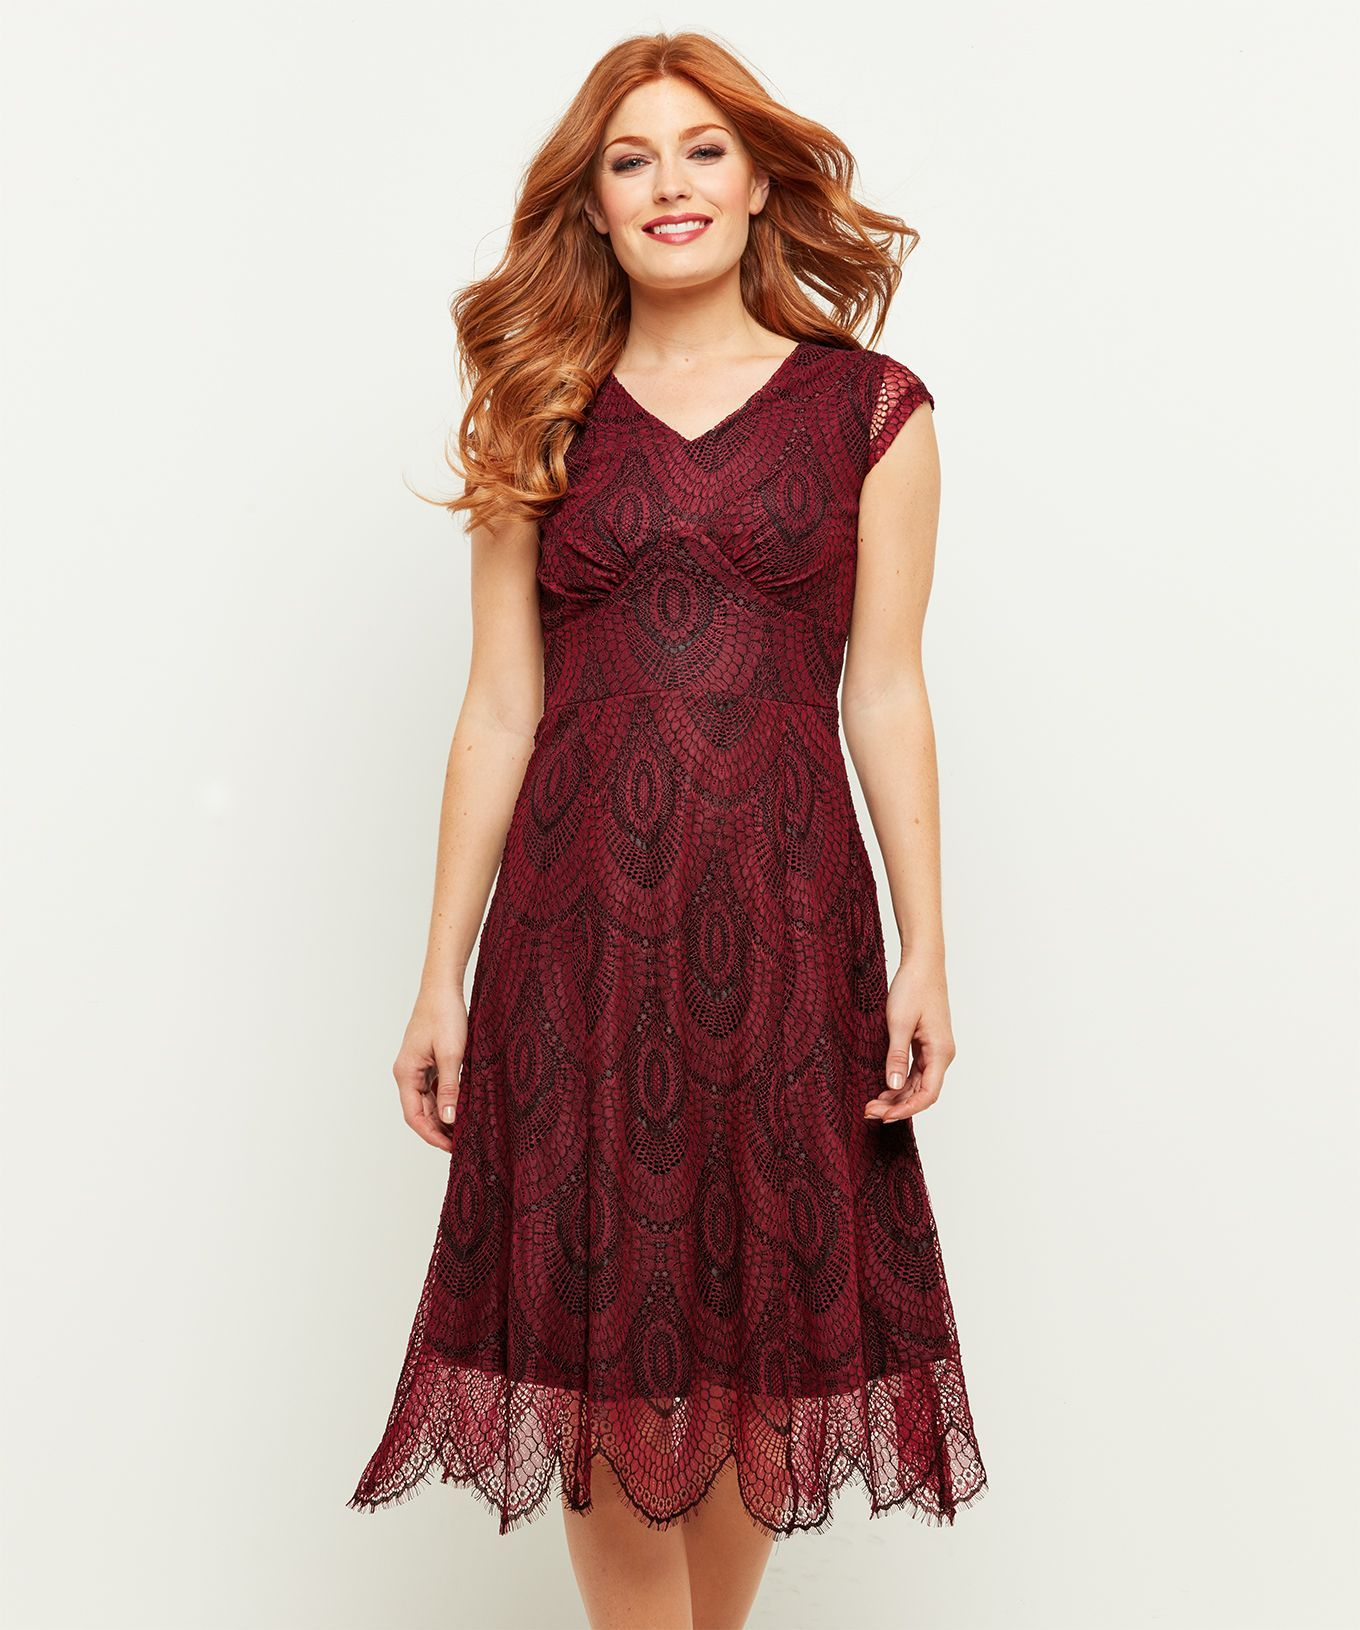 Romantic Lace Dress Fall In Love With This Decadent Lace Dress Perfect For Twirling On The Dancefloor This Christmas T Red Dress Women Dresses Womens Dresses